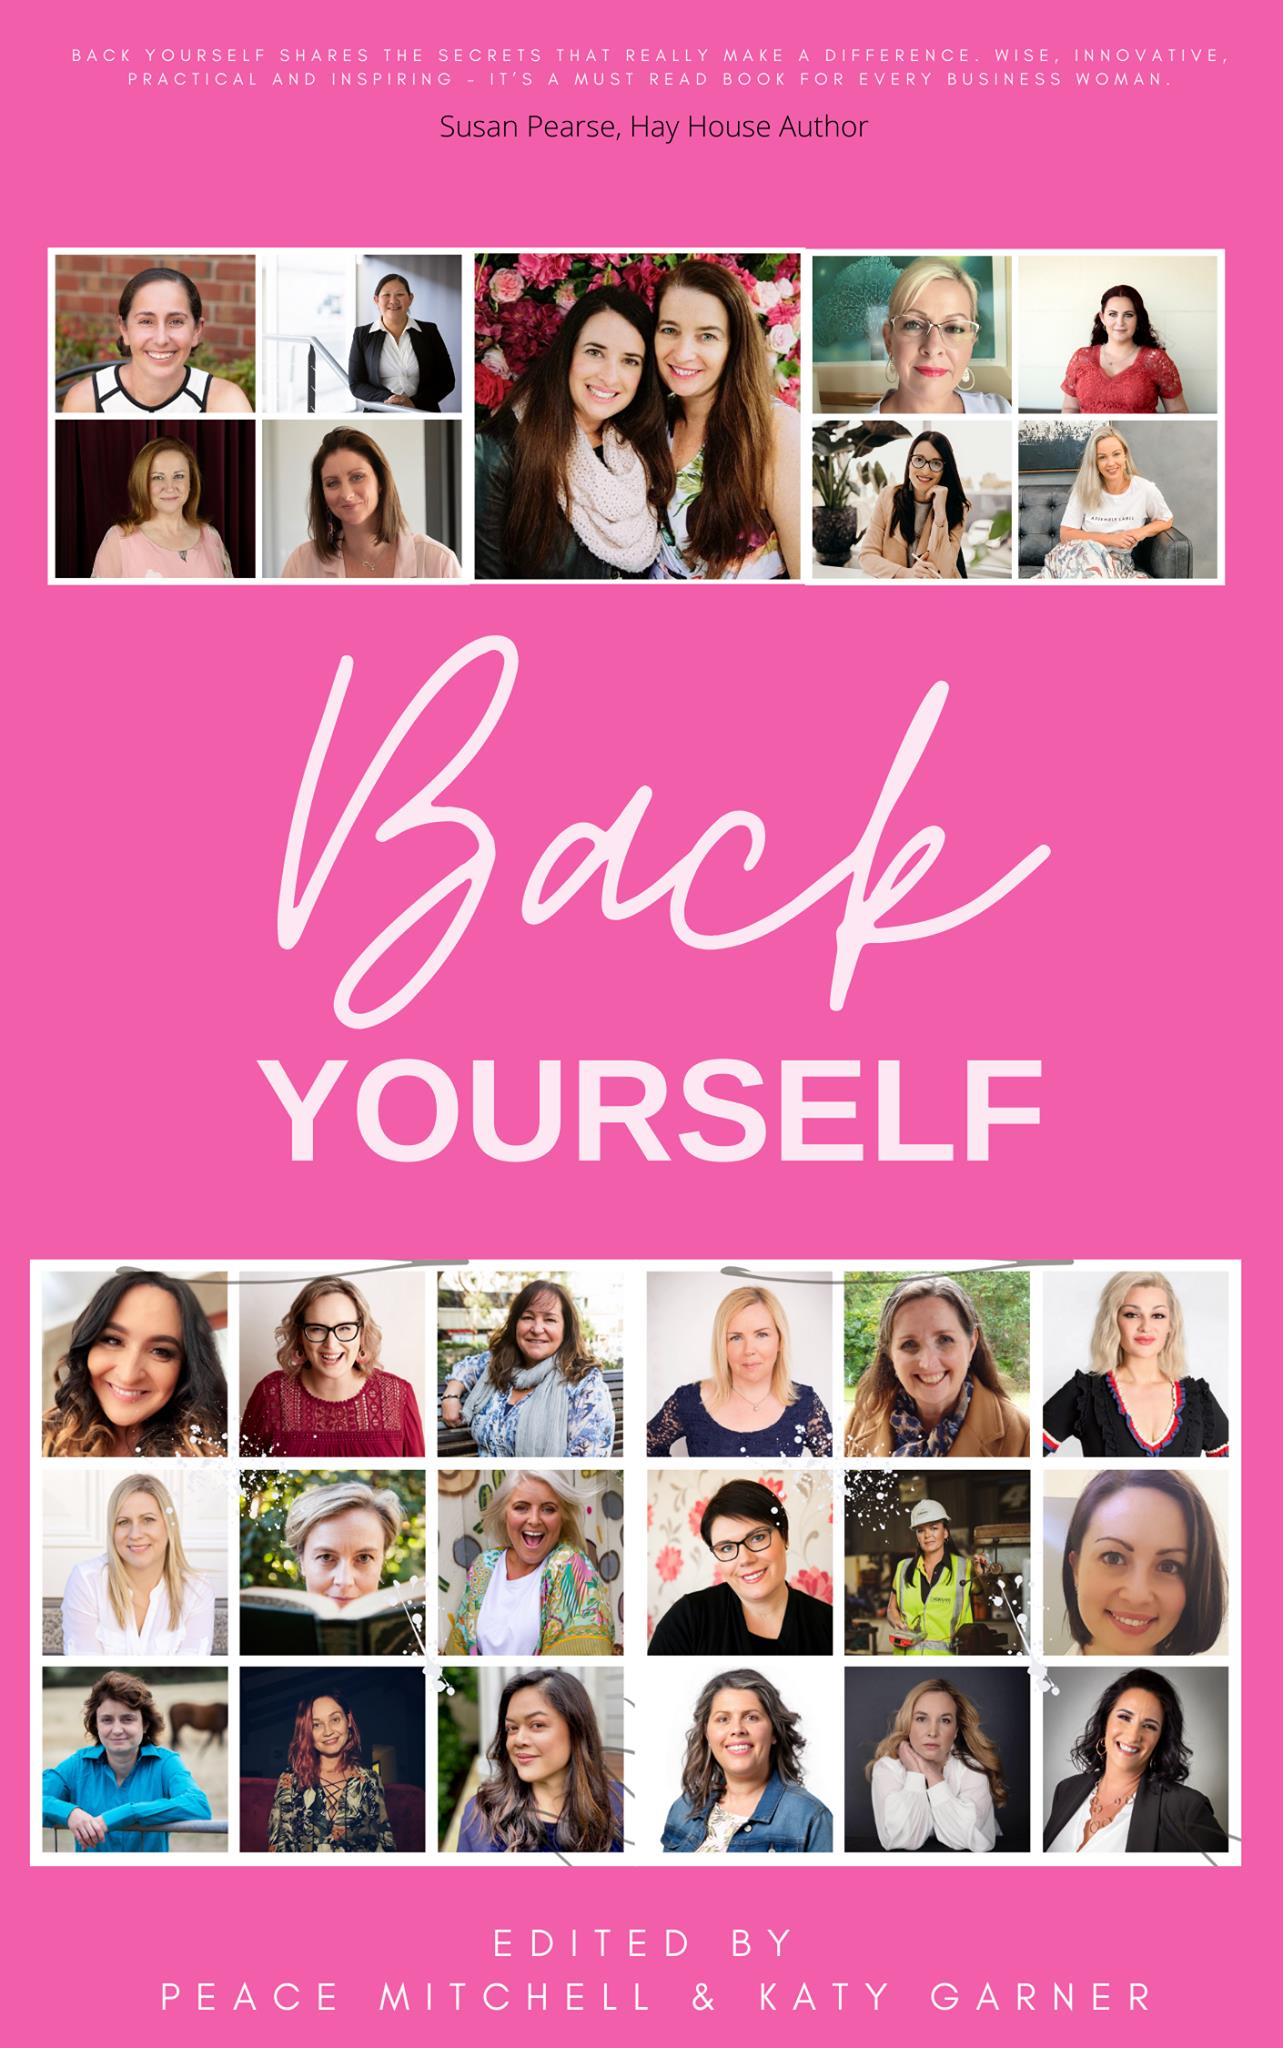 This is the cover mockup for the book Back Yourself